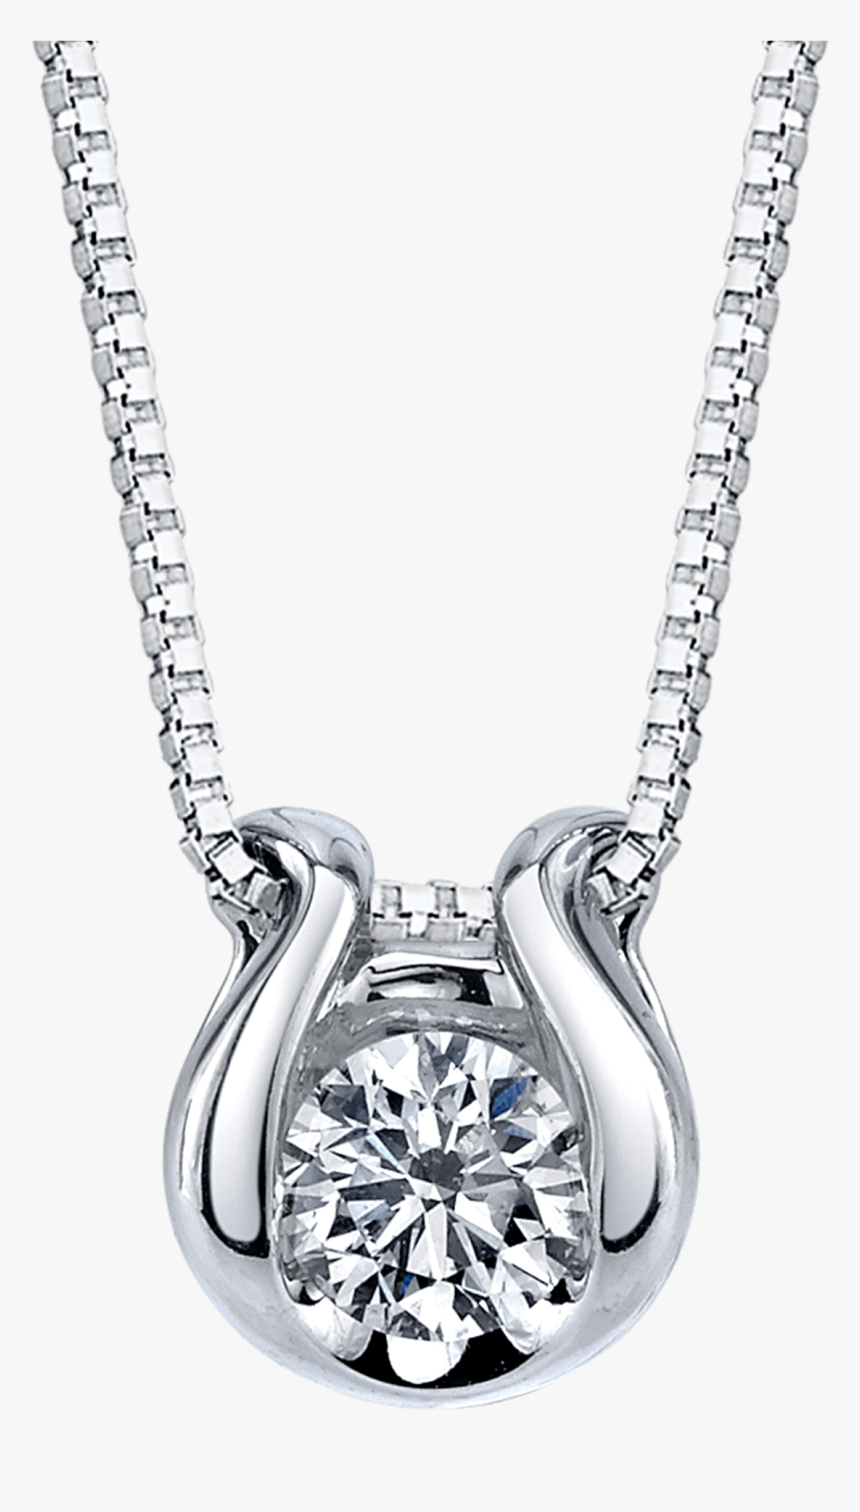 Picture Of Pdr-13651 - Solitaire Diamond Solitaire Gold Pendant Necklace, HD Png Download, Free Download